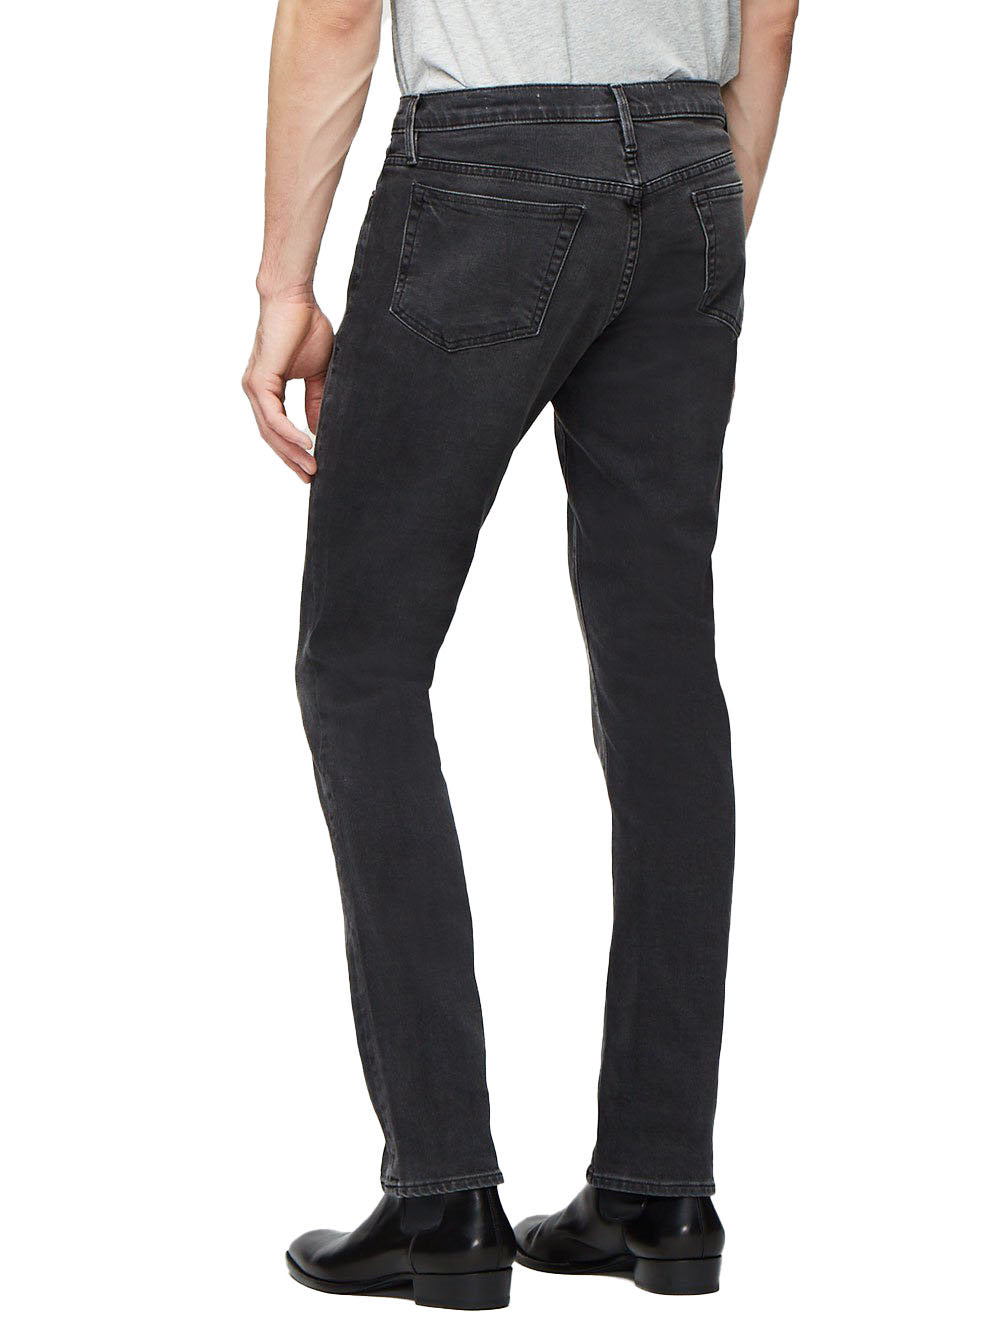 L'homme Slim Jeans - Dark Grey